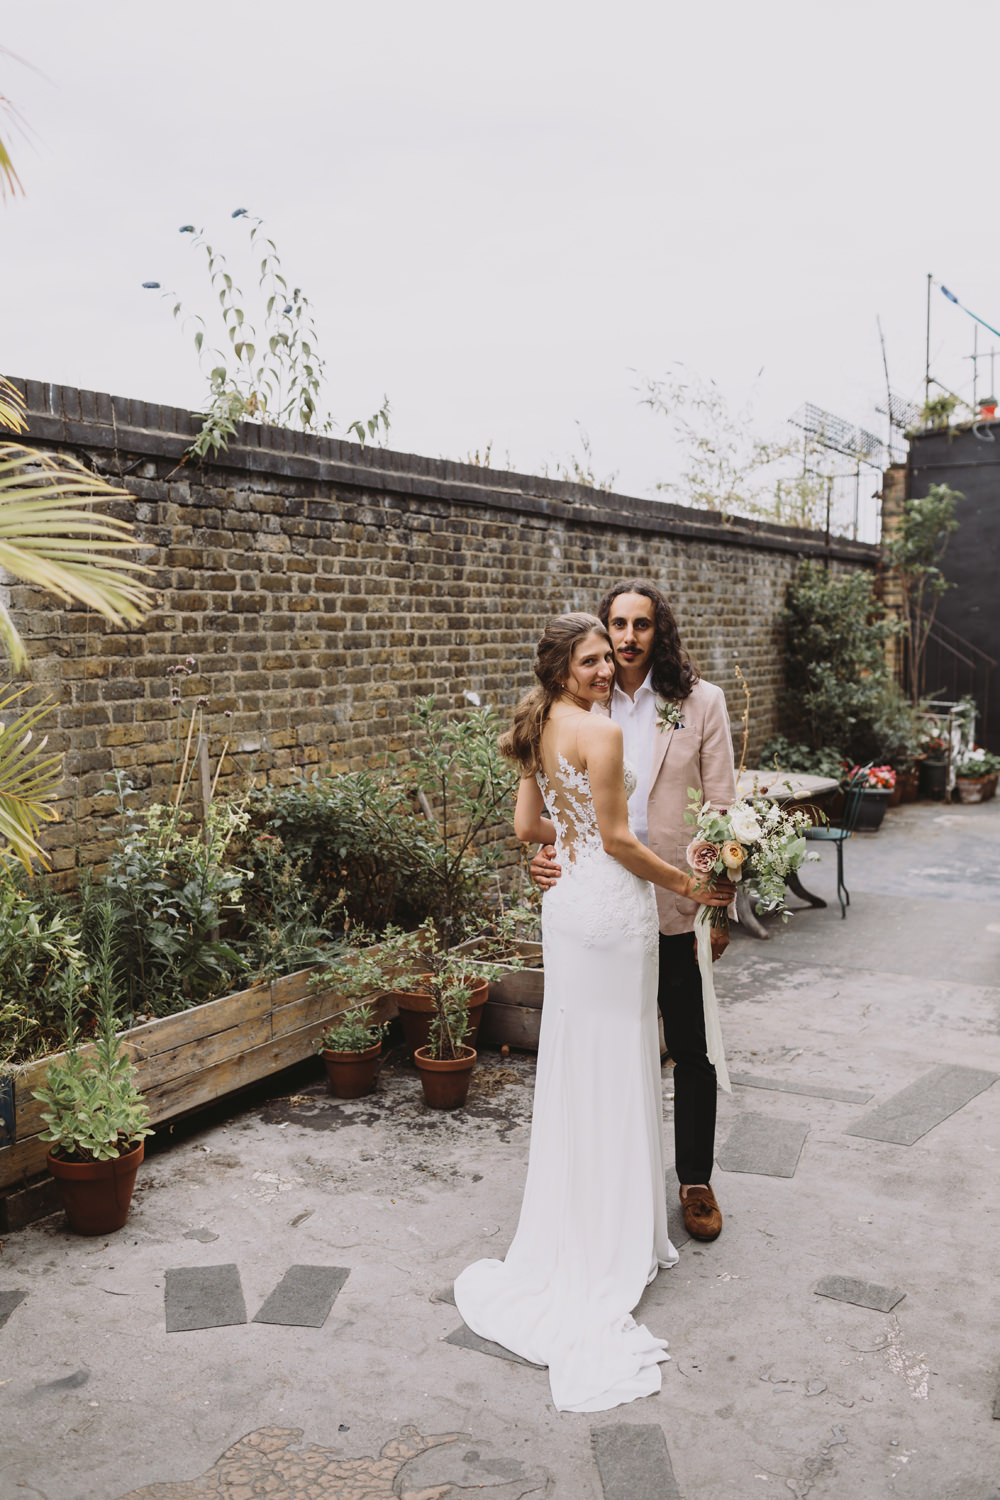 Bride Bridal Sleeveless V Neck Fit and Flare Train Pronovias Dress Gown Pink Jacket Reiss Groom Wild Bouquet Loose Handtied Rose Illusion Back Lace Tram House Wedding Luke Hayden Photography